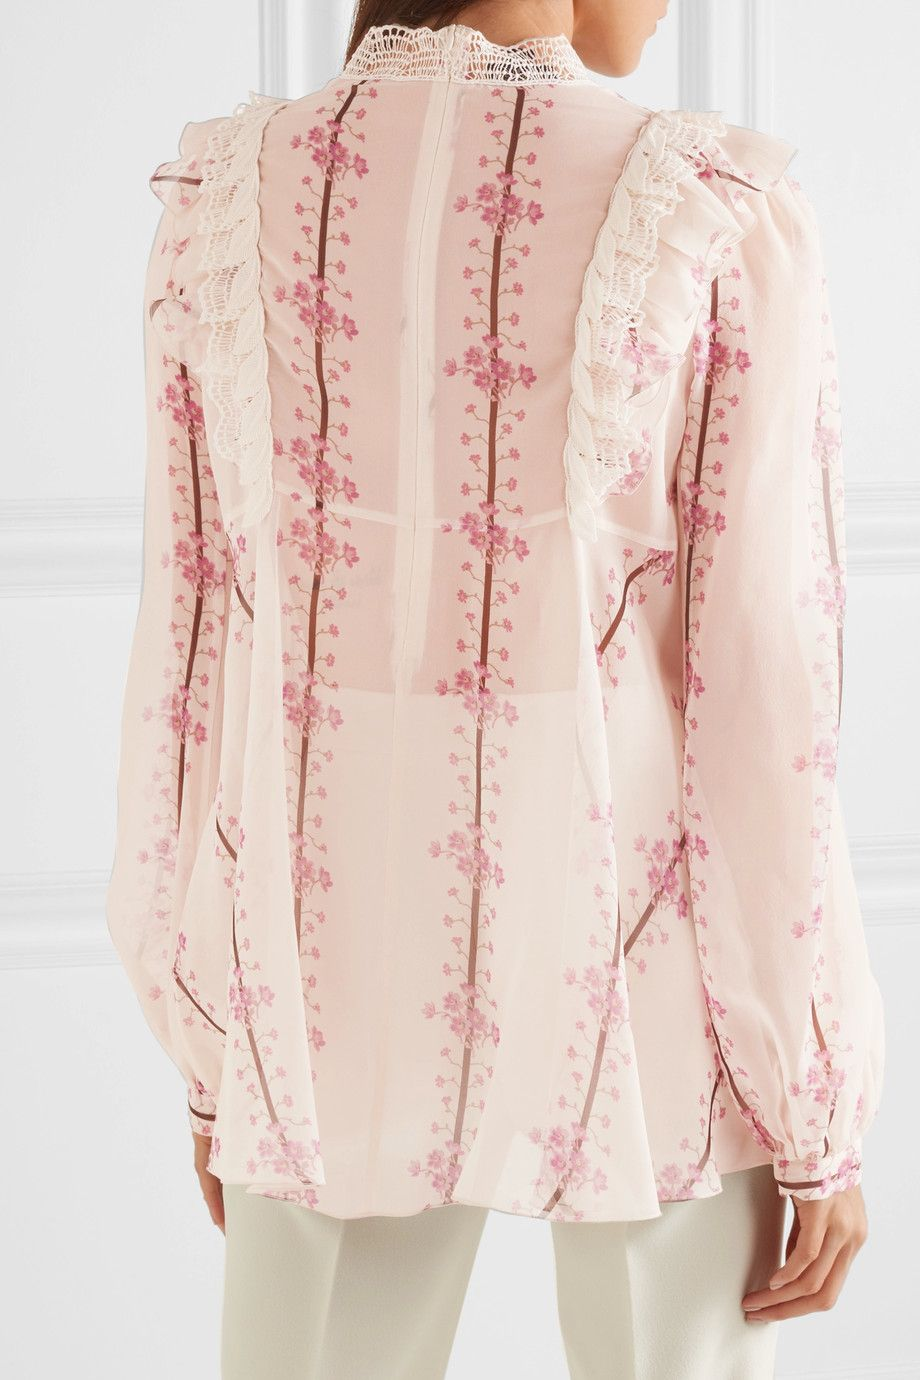 lace trim blouse - Pink & Purple Giambattista Valli Cheap Sale Inexpensive Best Seller Outlet Sale Online Clearance Prices tFGIJEuw